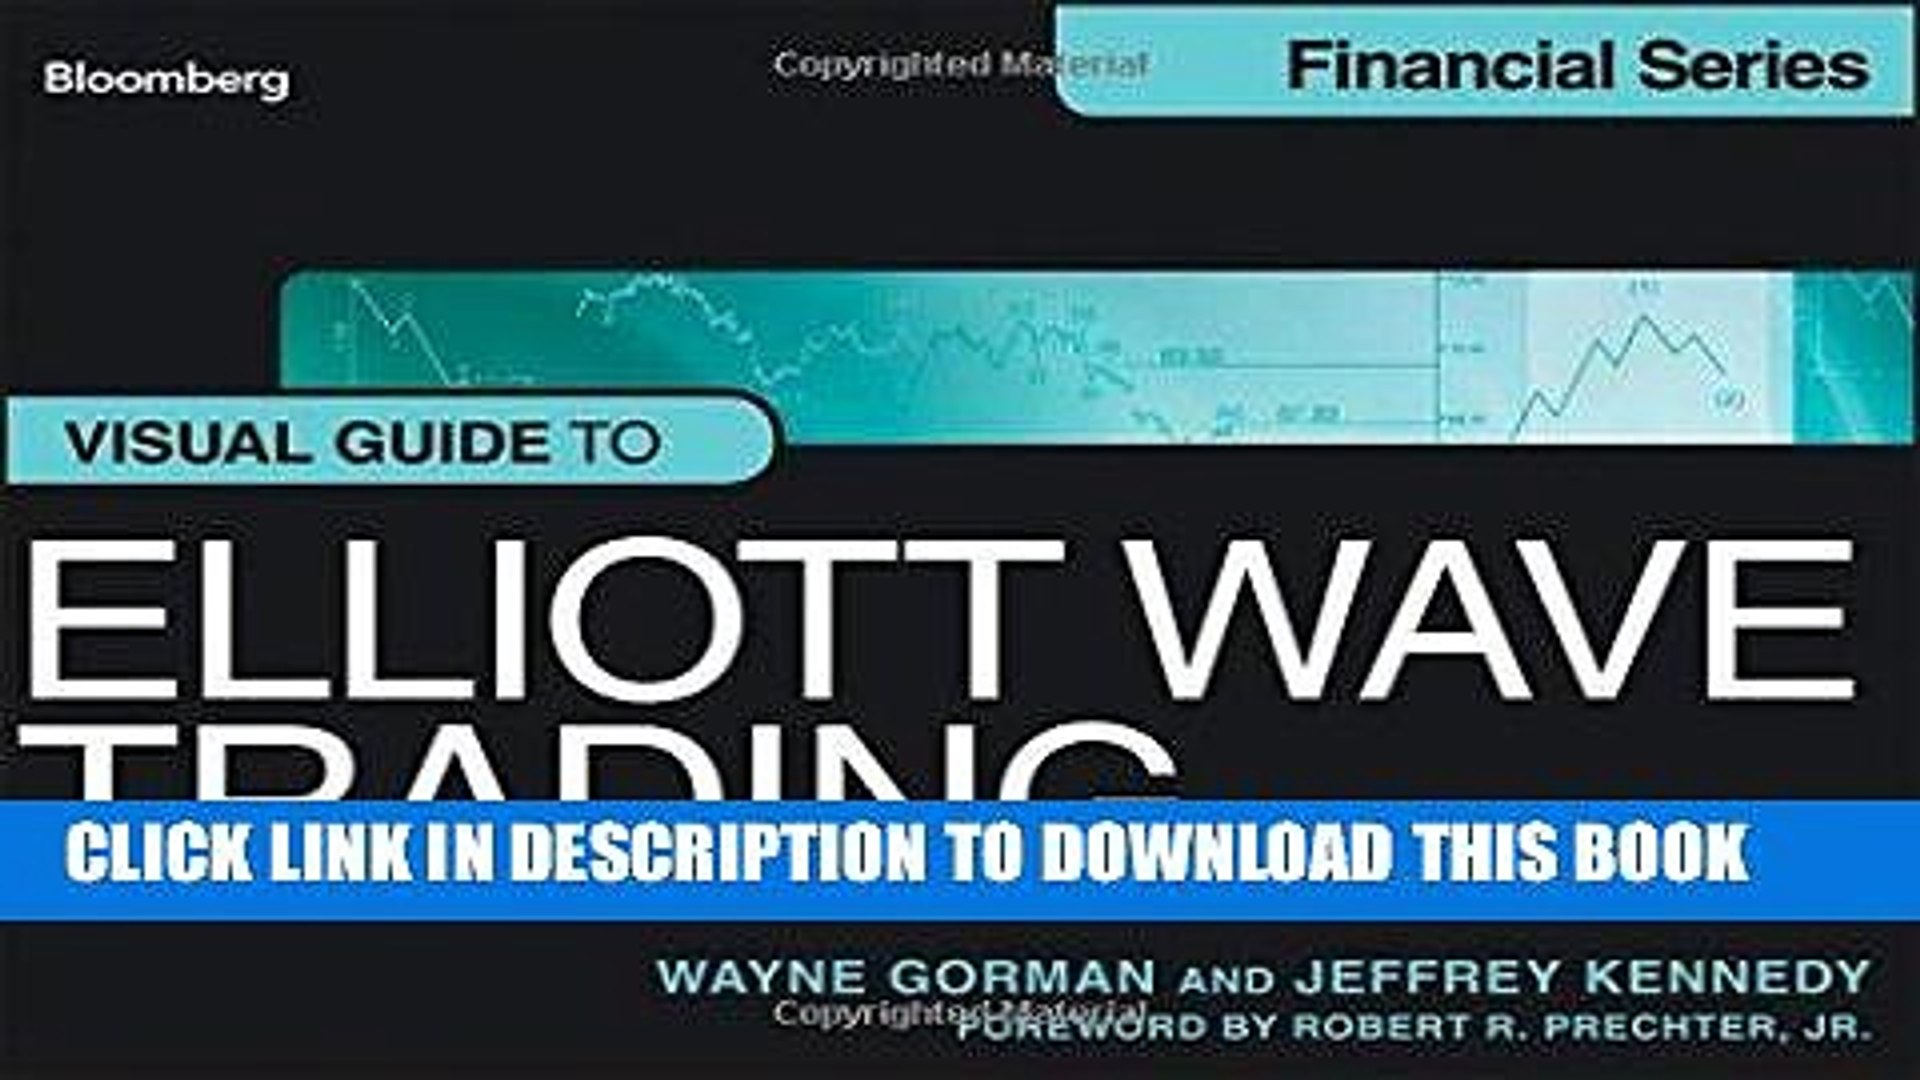 [PDF] Visual Guide to Elliott Wave Trading [Full Ebook]